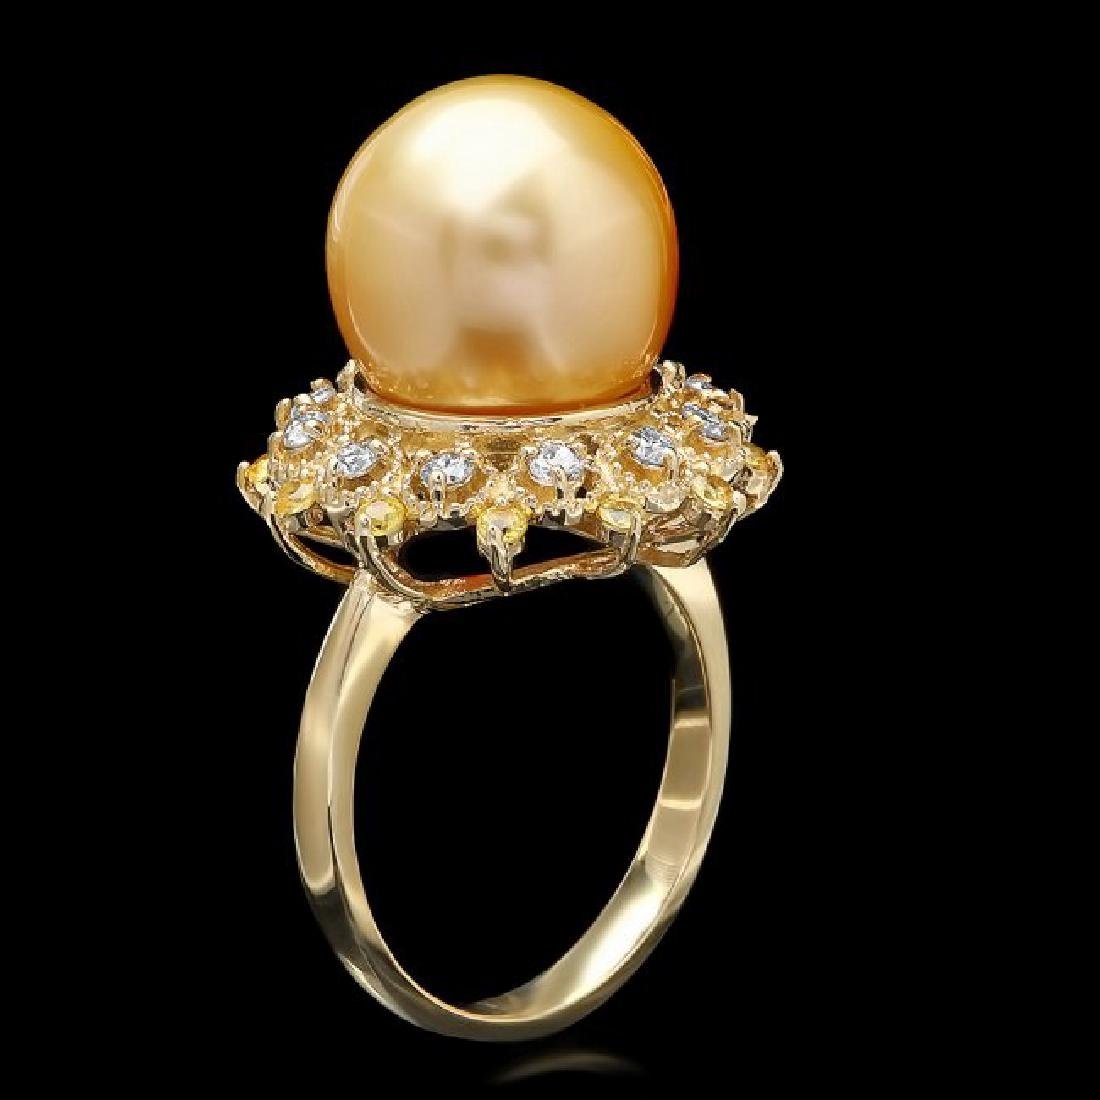 14k Yellow Gold 12mm Pearl 0.40ct Diamond Ring - 2